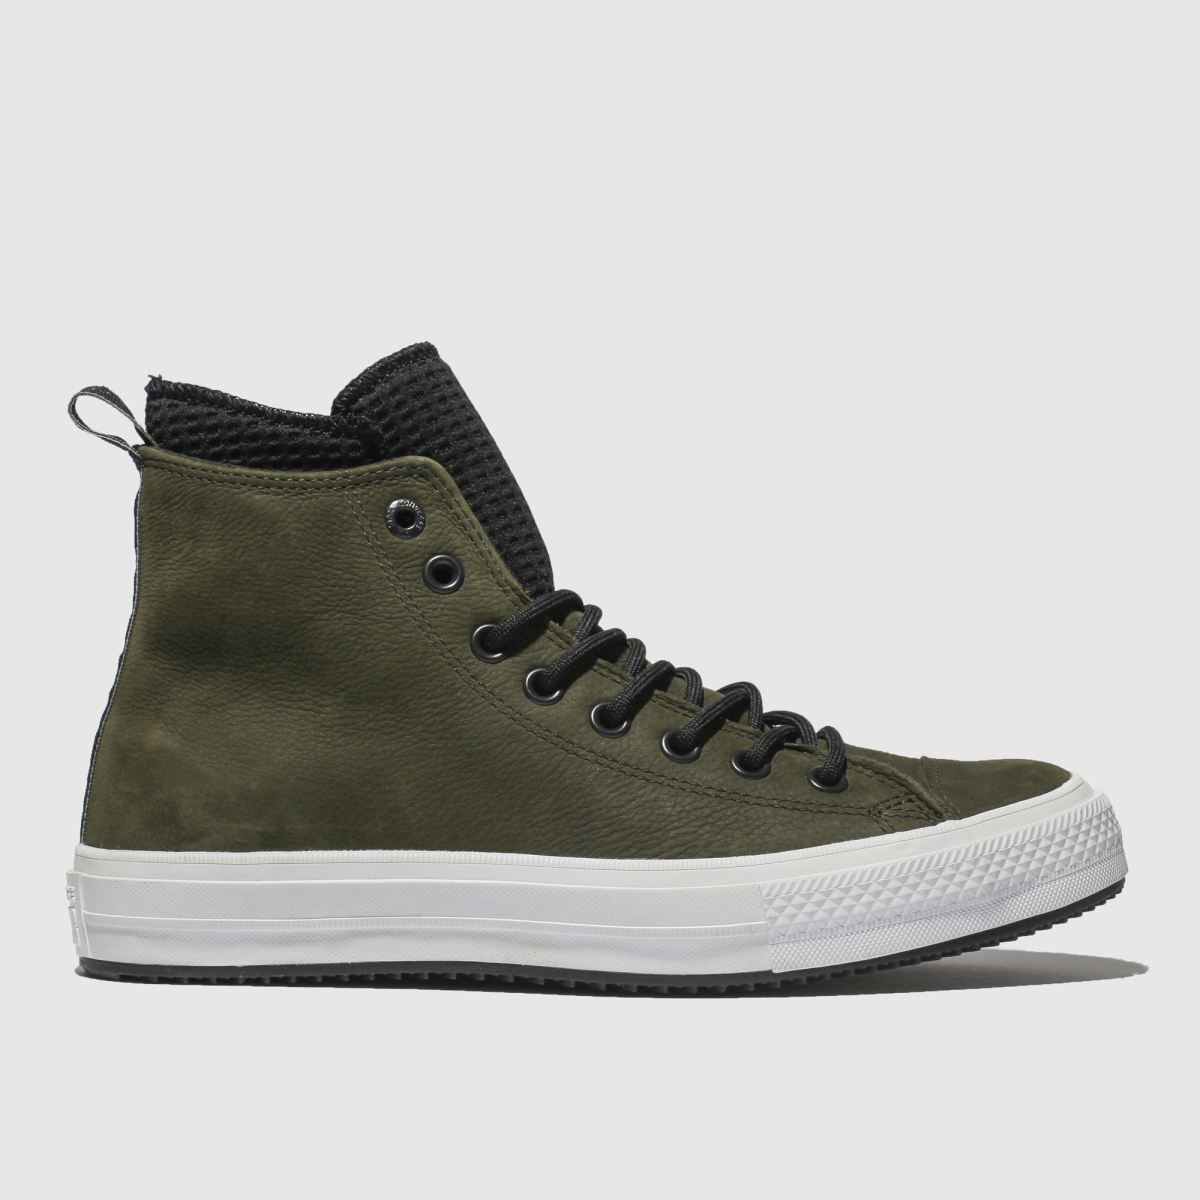 Converse Khaki All Star Utility Draft Boot Hi Trainers